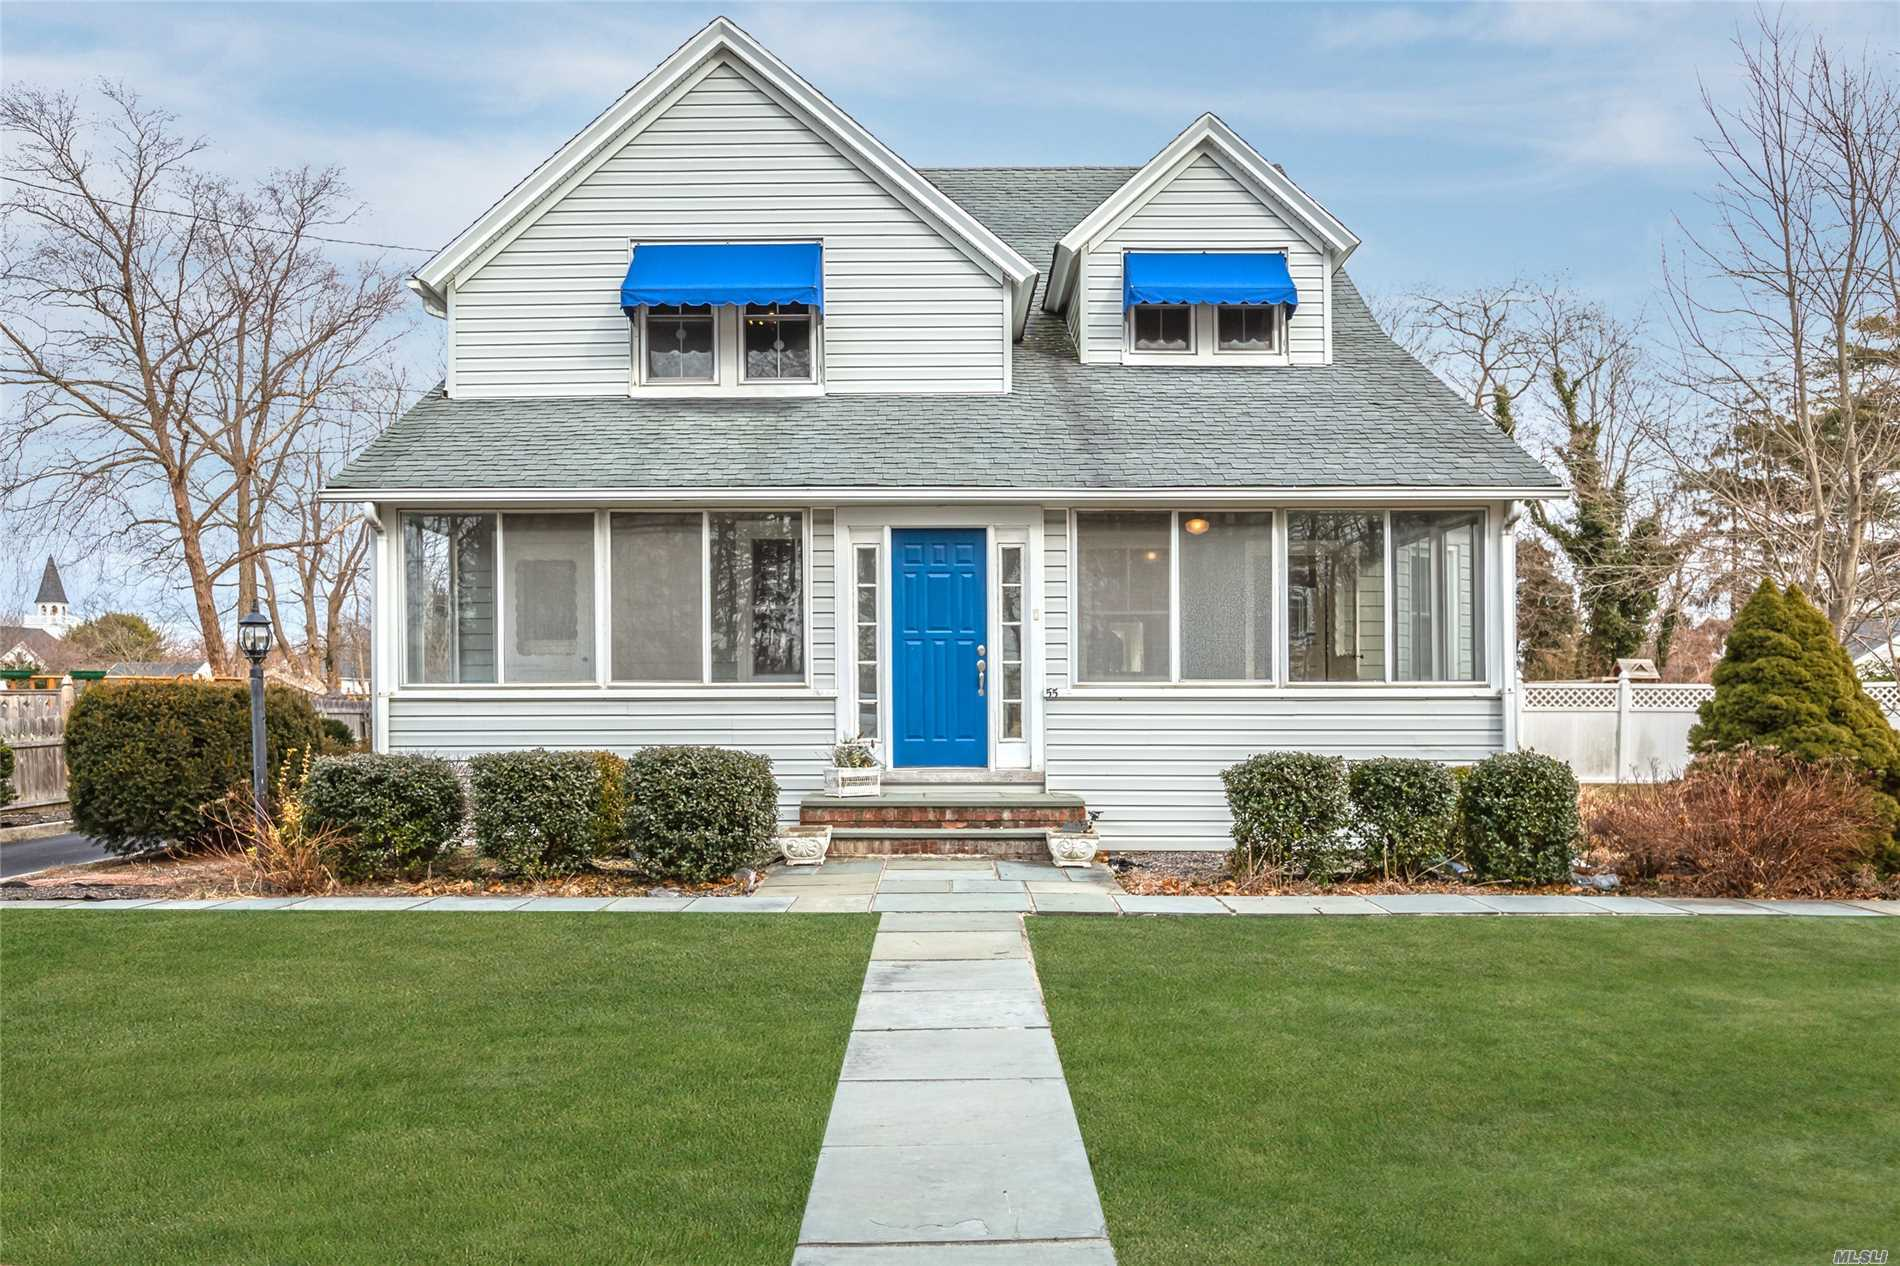 Charming Older Home South Of Montauk In The Quaint Town Of West Sayville. This Home Offers A Three Season Front Porch, Redone Kitchen With All New Appliances, Wood Floors, Detached Two Car Garage, Bluestone Patio, And Nice Size Property. Close To All....Sayville Town, West Sayville Golf Course, Boating, Maritime Museum And Dining On The Water. Sayville School Distirct. Don't Miss!